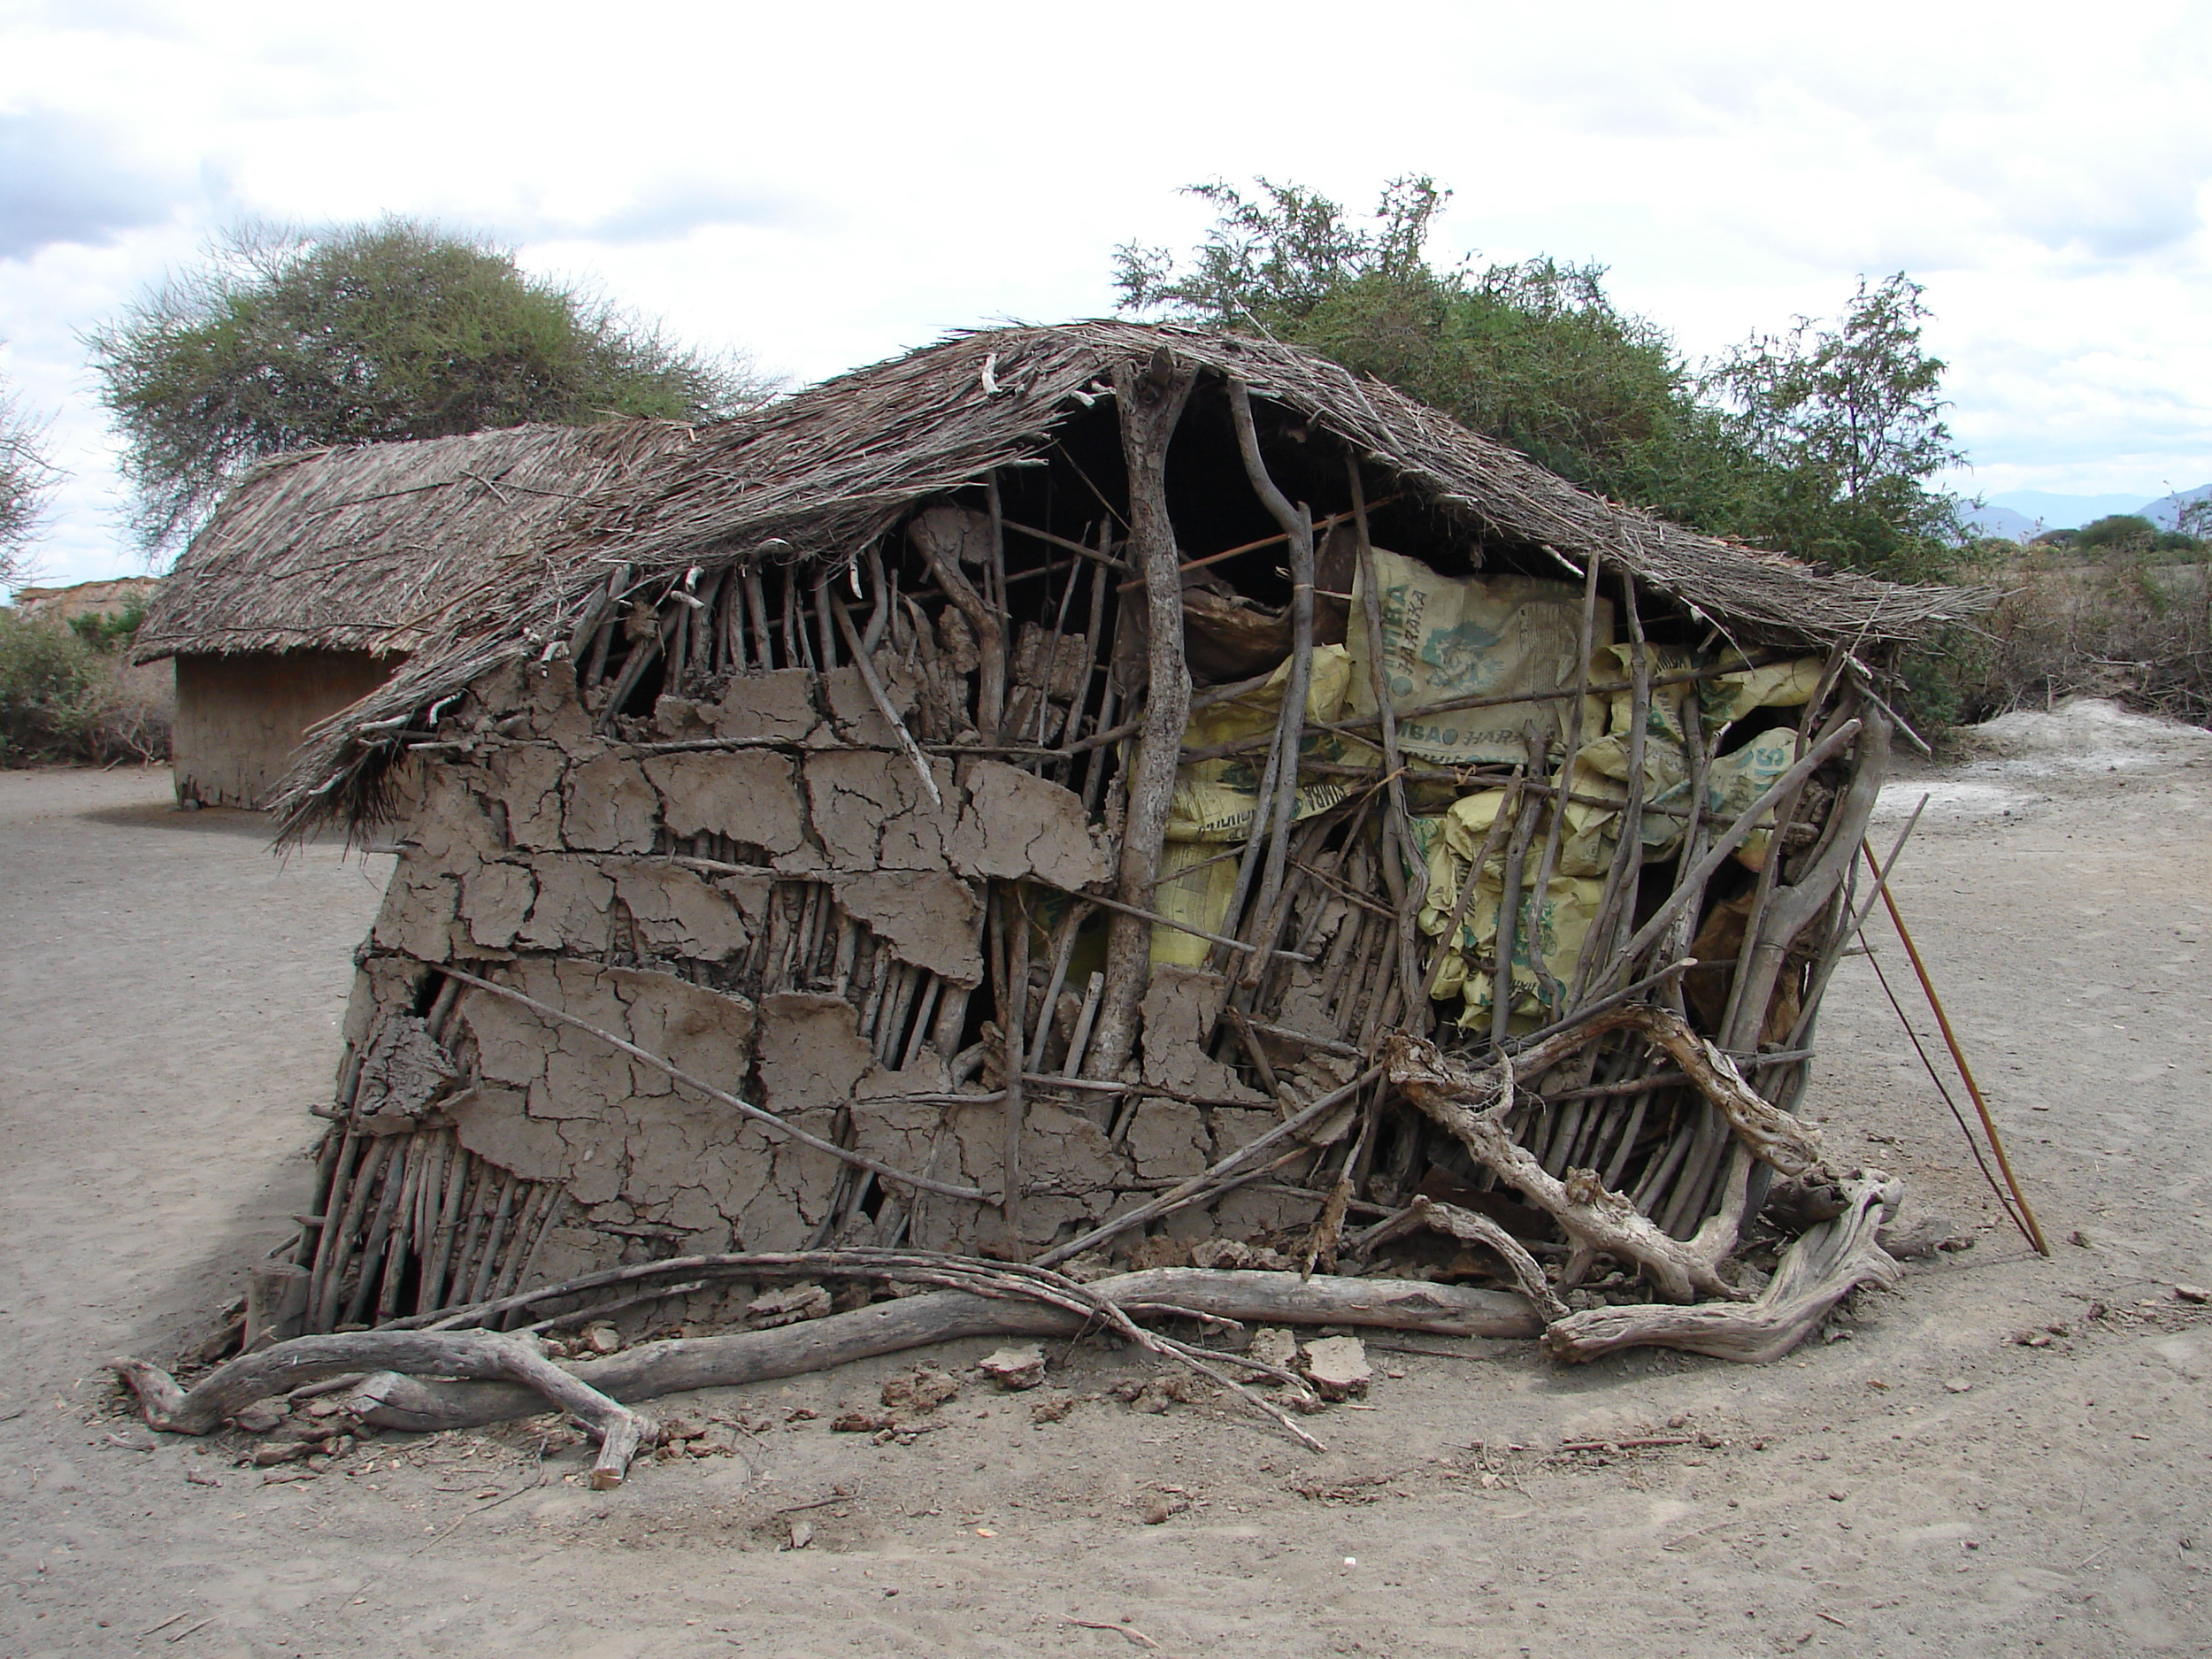 A typical rural household begins to collapse - Tanzania